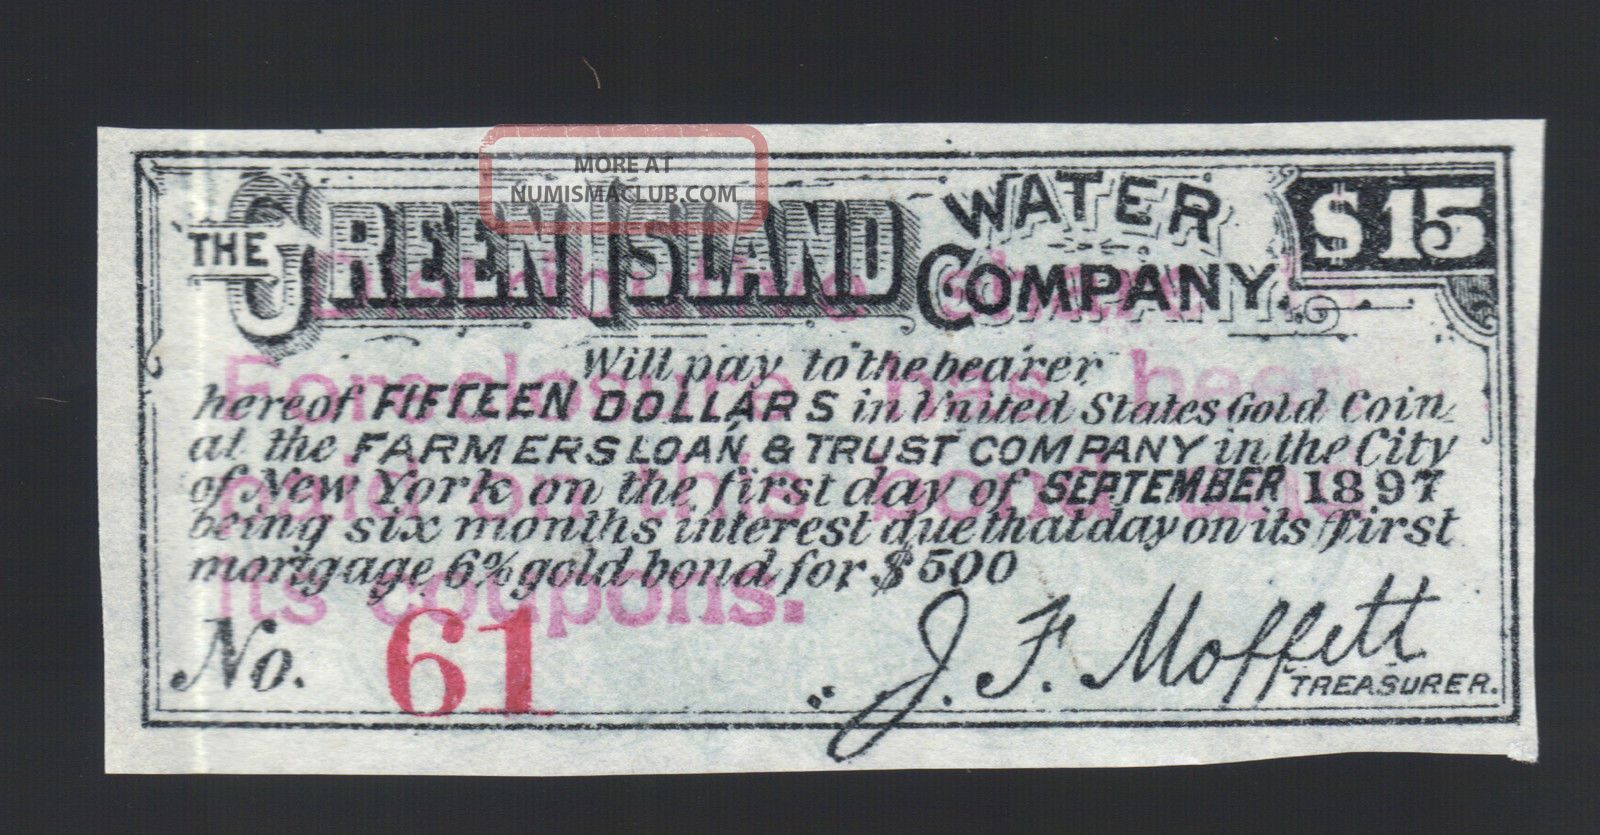 $15 1897 Green Island Water Co Certificate $500 Gold Bond Coupon Moffett Note Stocks & Bonds, Scripophily photo